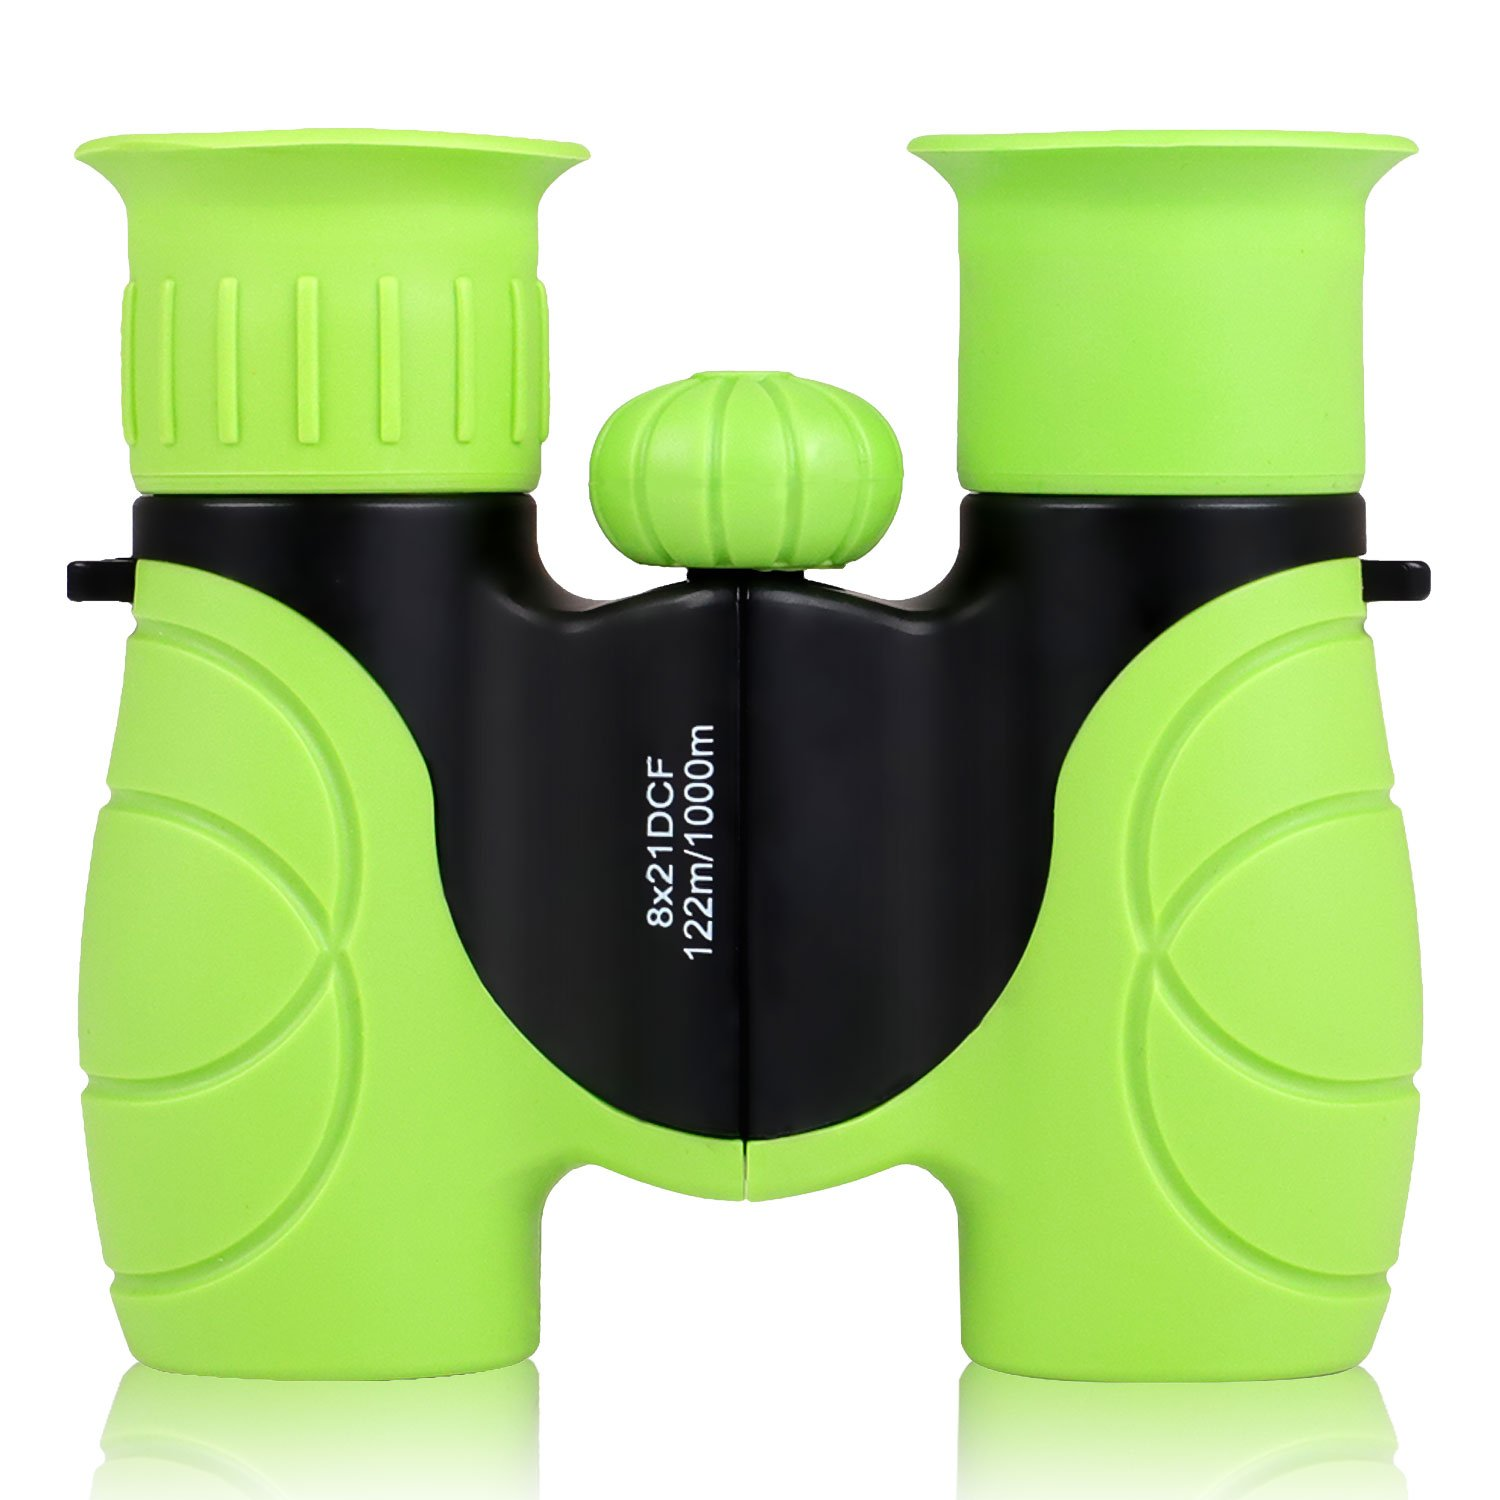 Kids Binoculars, Jarlink 8 x 21 Compact Binoculars with Protective Rubber for Bird Watching, Hunting, Foldable and Easy Focus for Boys and Girls (Green)